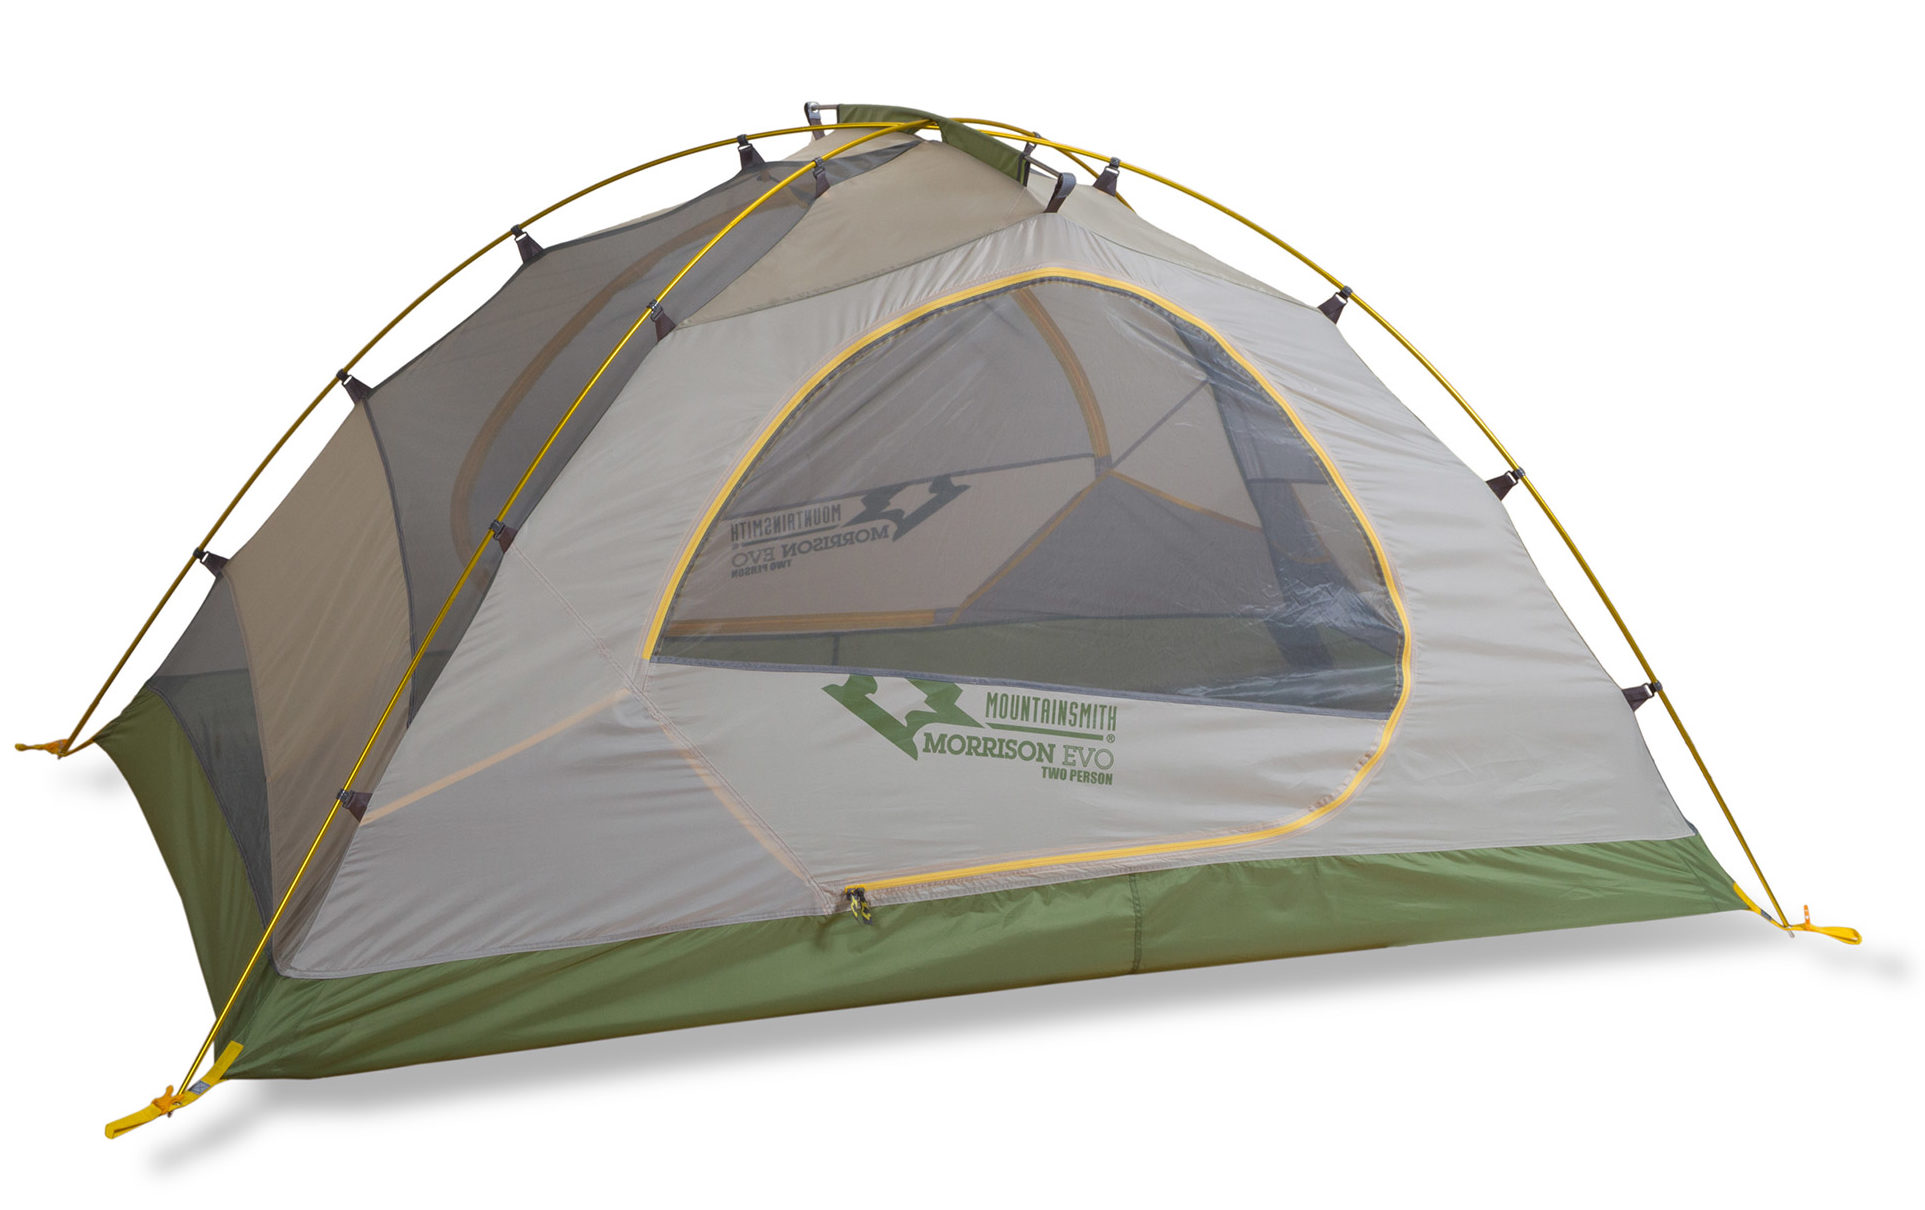 2 person tent under 4 lbs